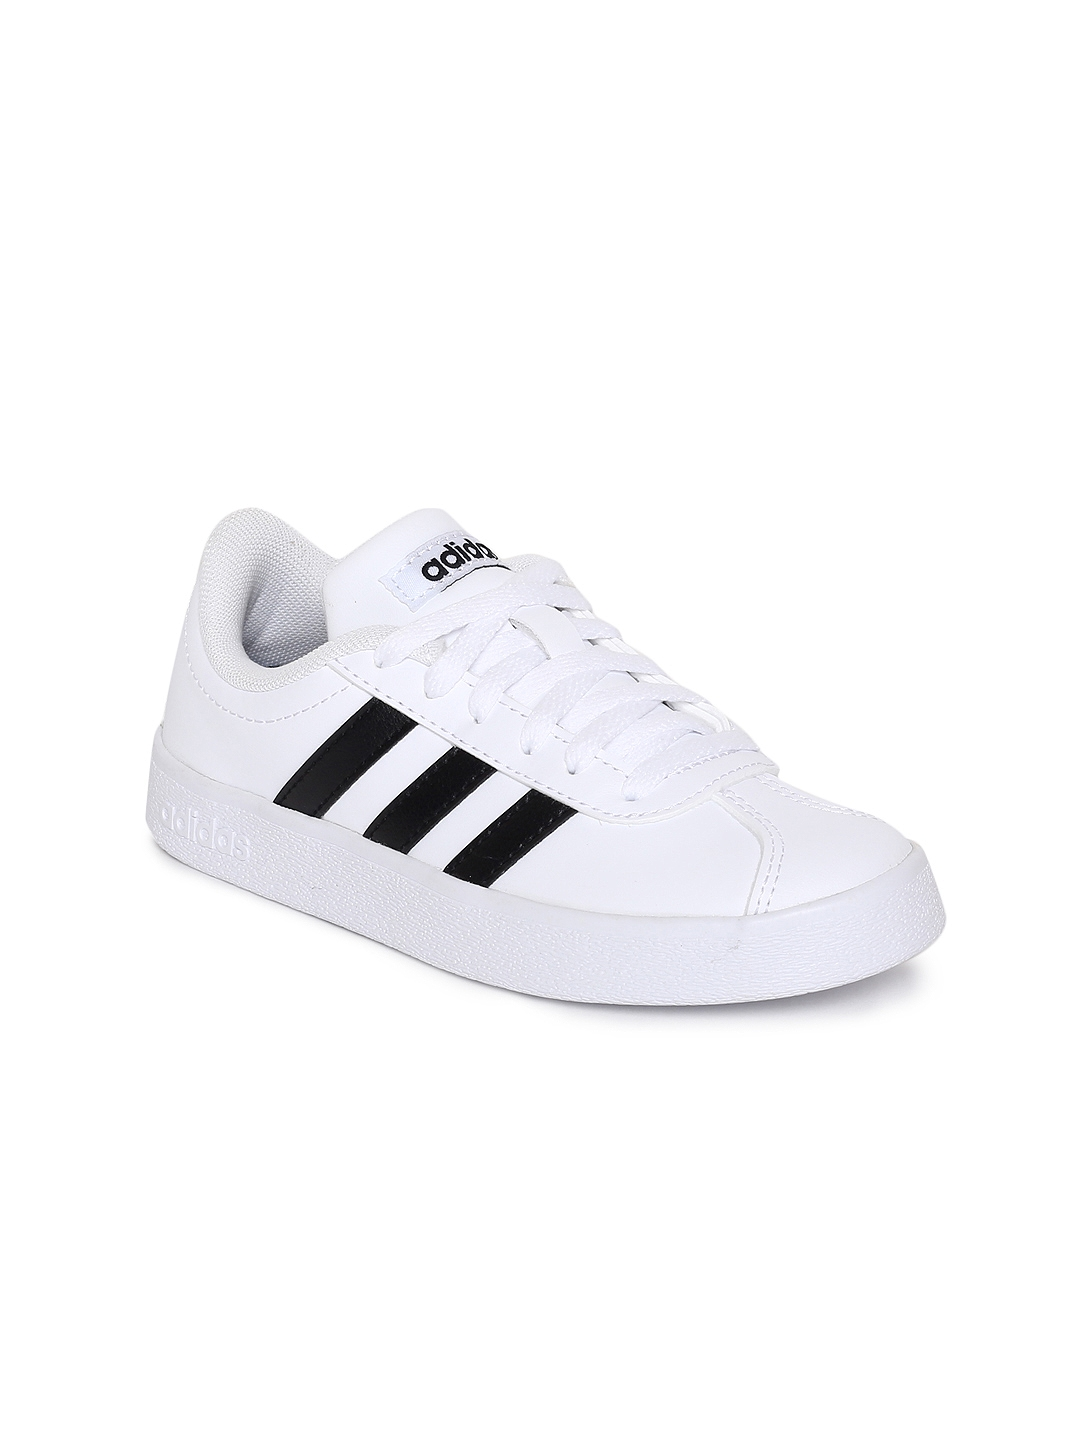 Buy ADIDAS Kids White Solid VL COURT 2.0 K Tennis Shoes - Casual ... 528474c27